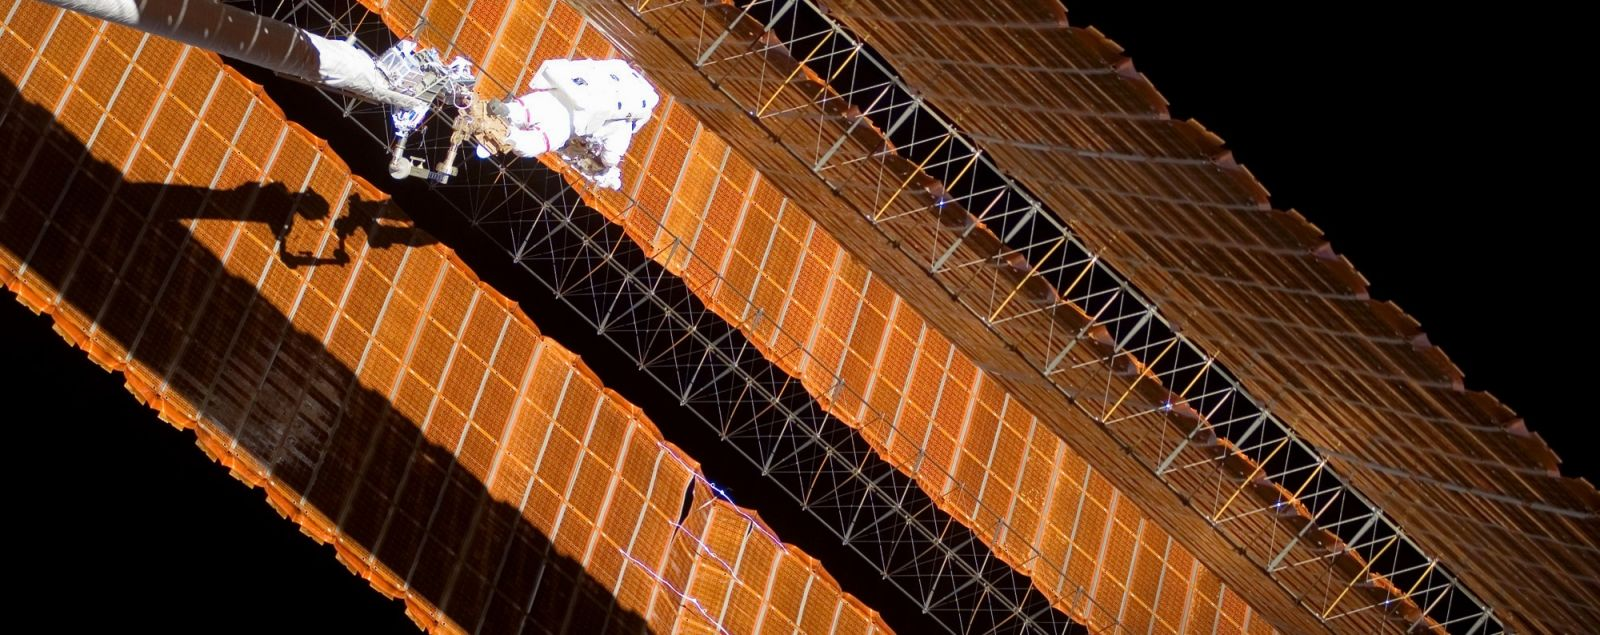 NASA astronaut Scott Parazynski conducts an unplanned EVA to repair a damaged solar array on the International Space Station during STS-120. Photo Credit: NASA